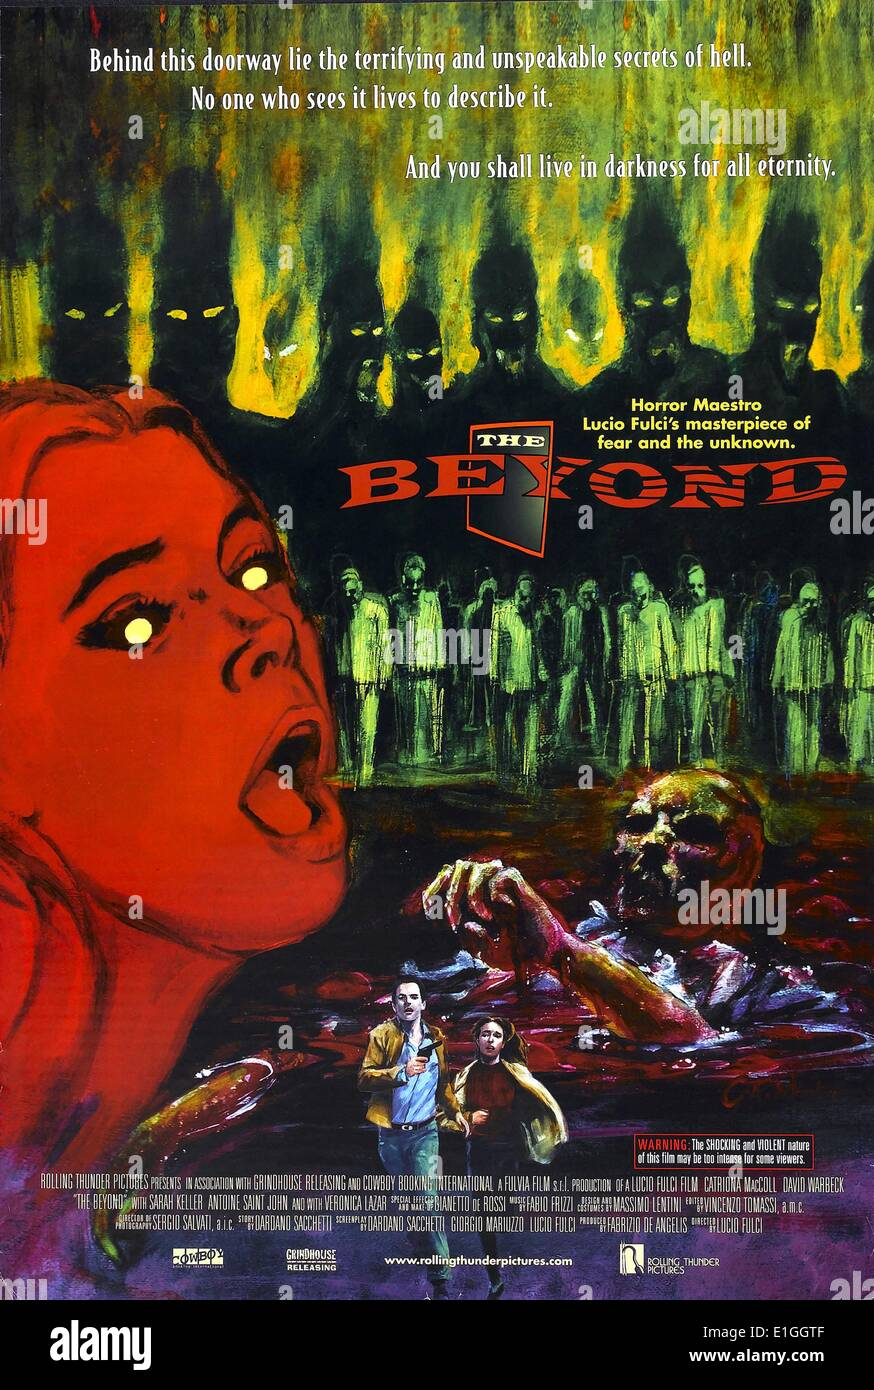 'The Beyond' a 1981 Italian horror film directed by Lucio Fulci. - Stock Image